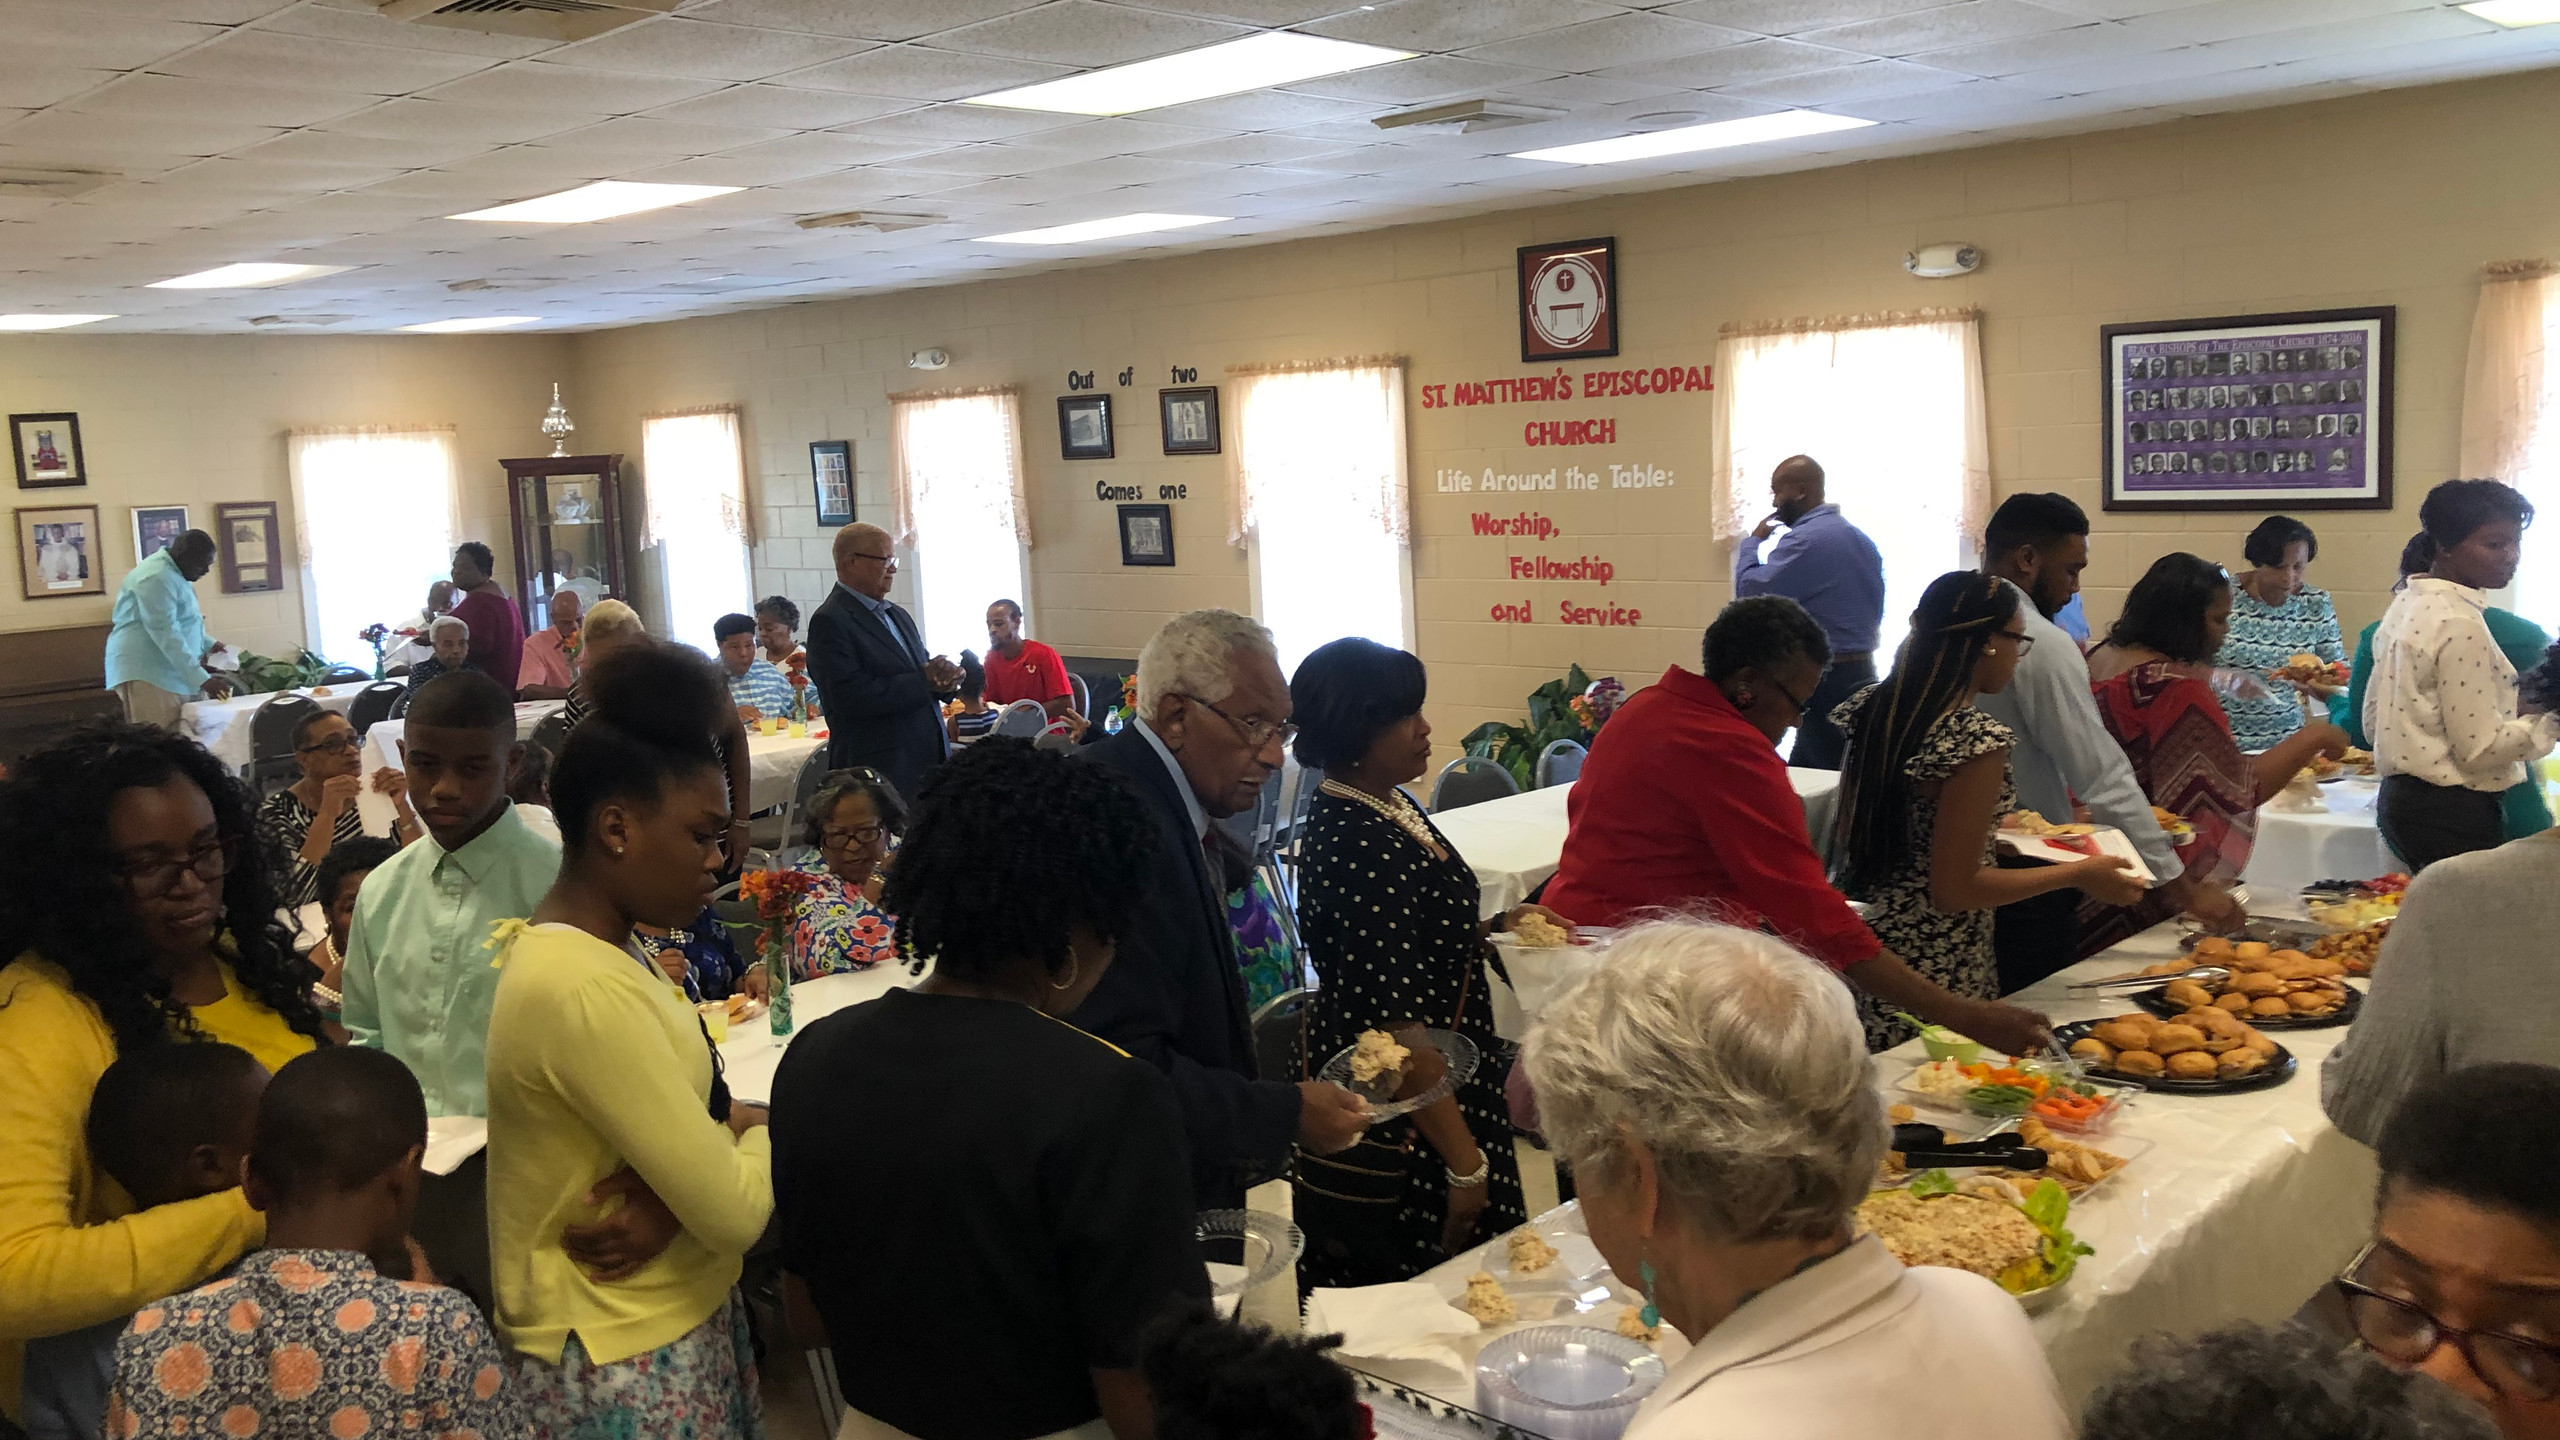 The Repast After Worship